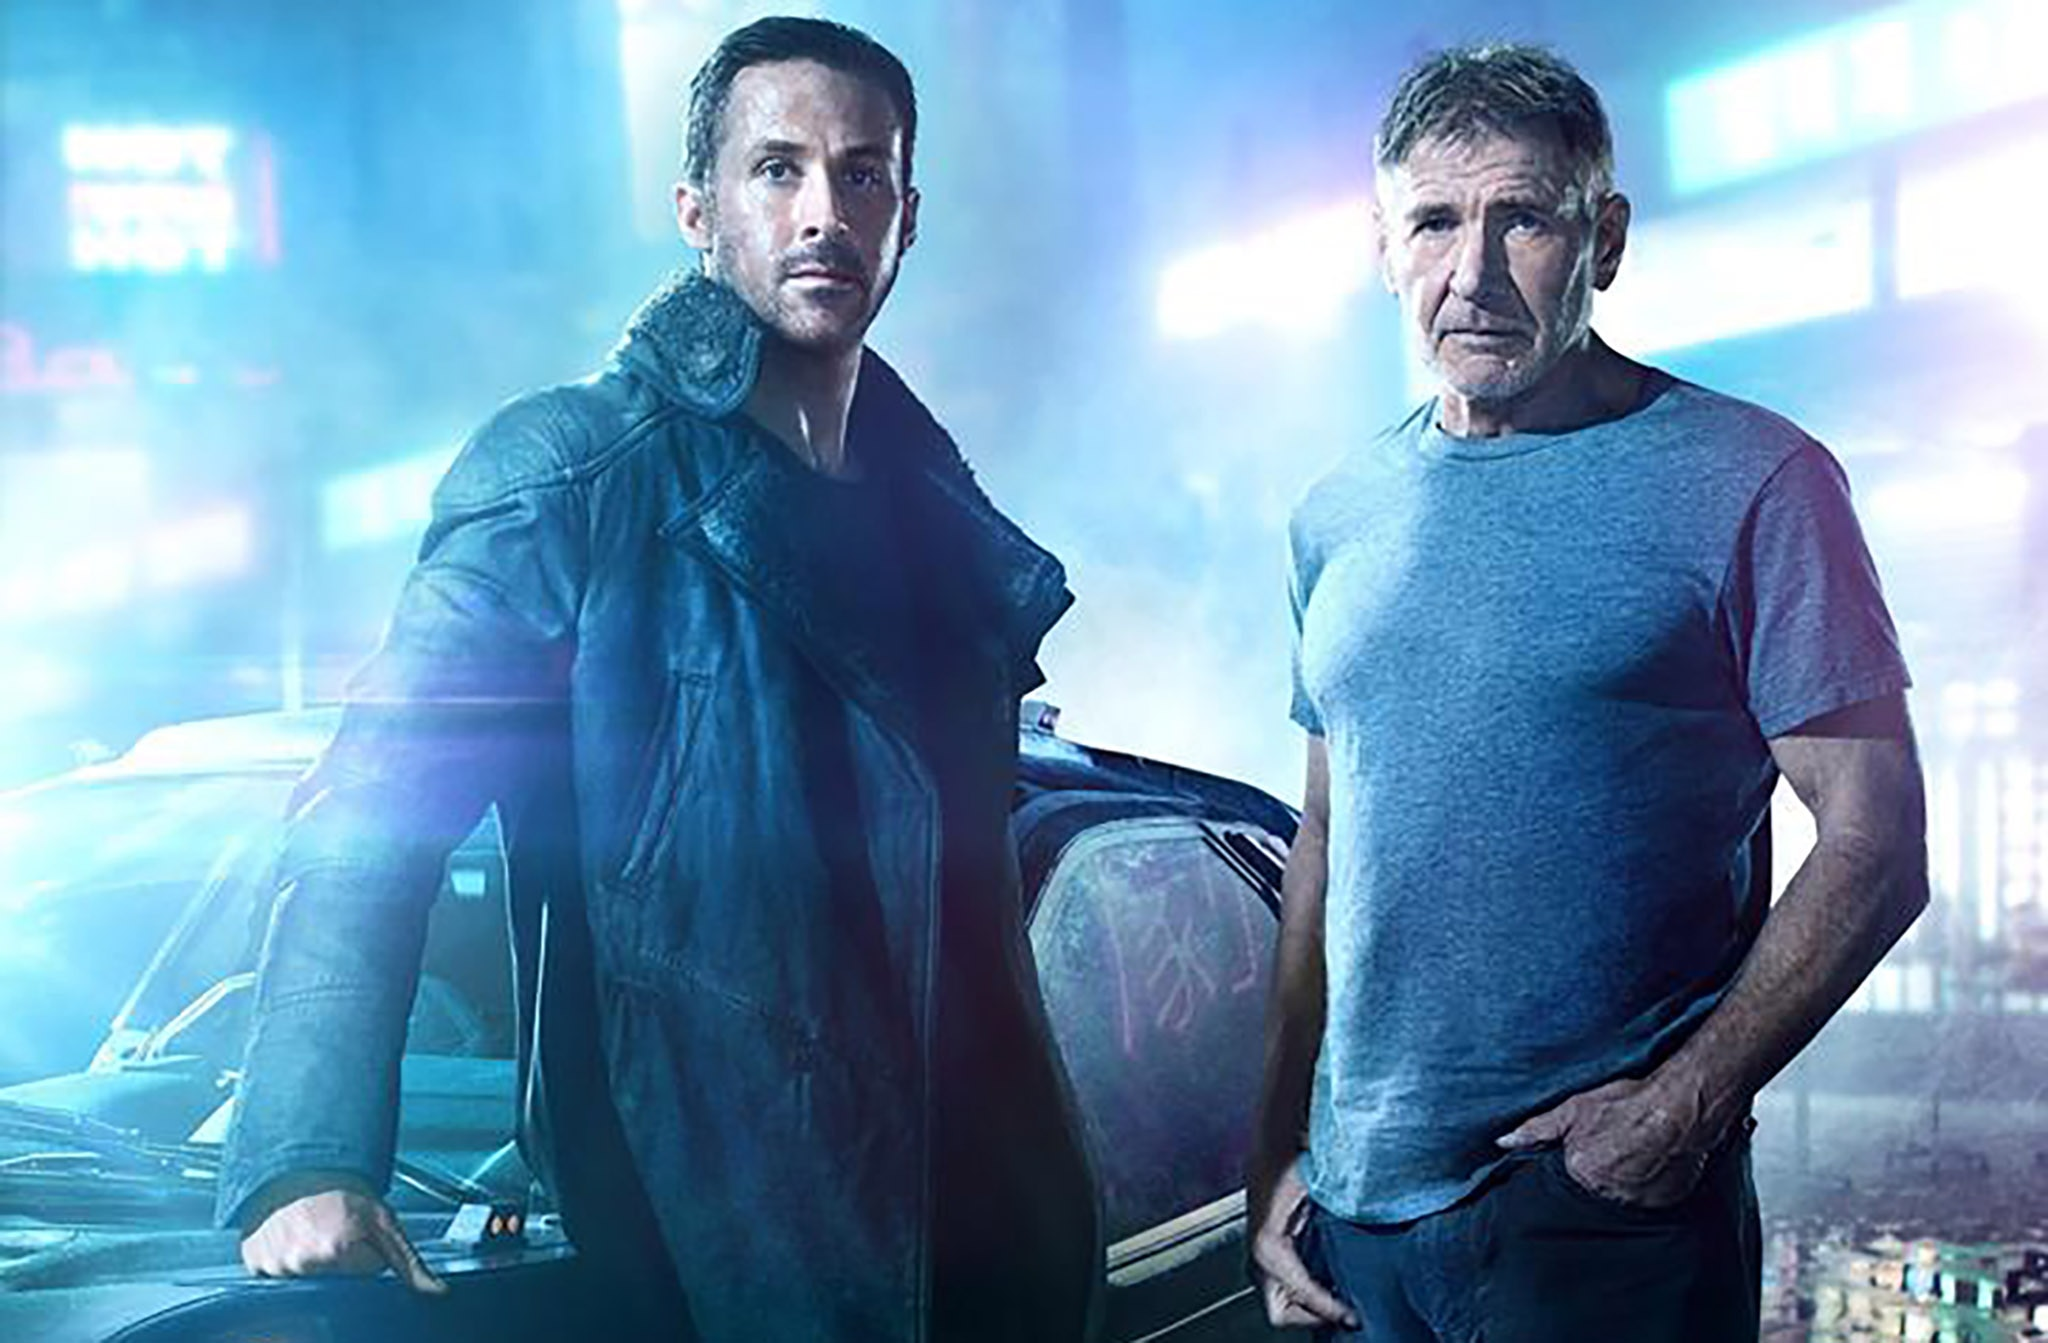 The Official 'Blade Runner 2049' Trailer Is Stunning Chaos